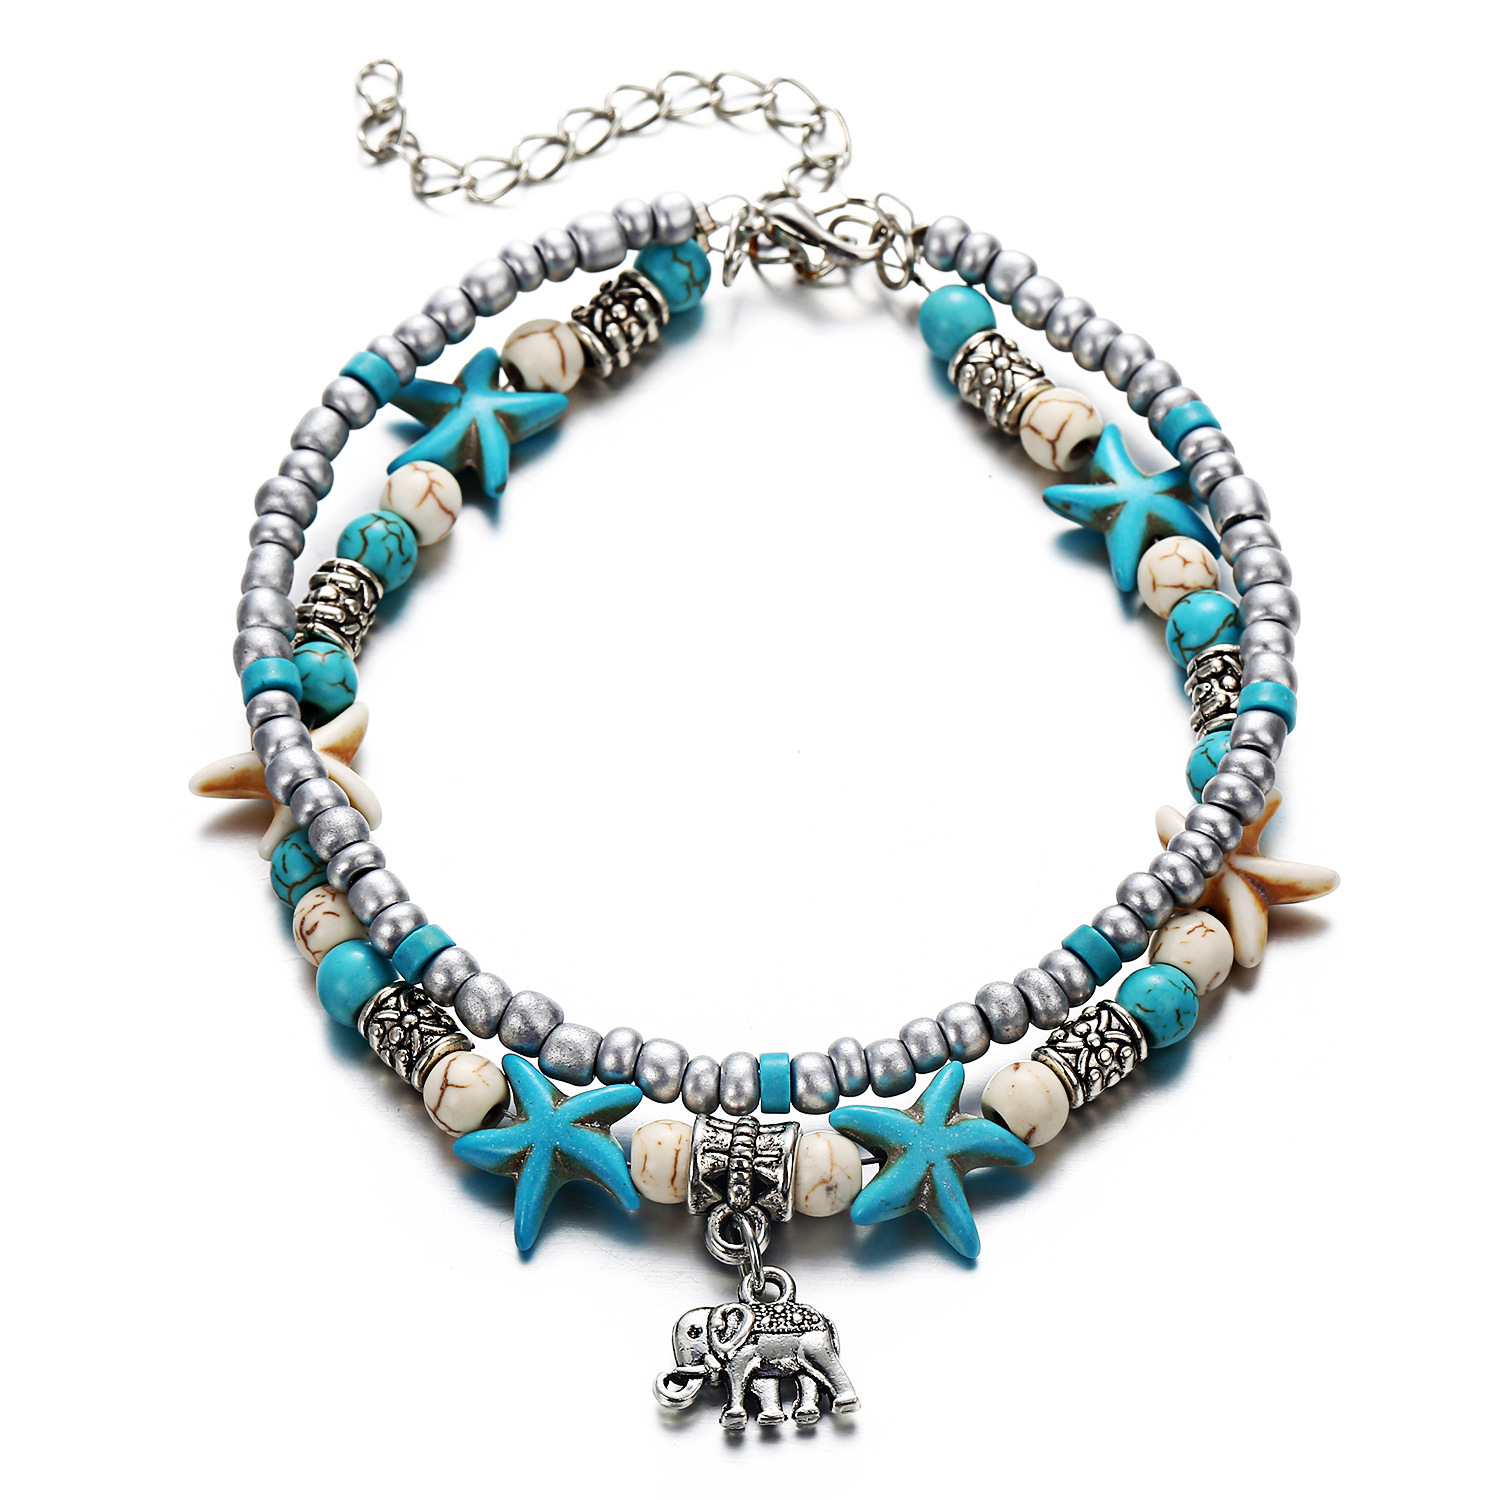 LE SKY New Fashion Beach Jewelry Double Layer Elephant Pendant Beads Anklet Foot Chain Ankle Bracelet Jewelry For Women